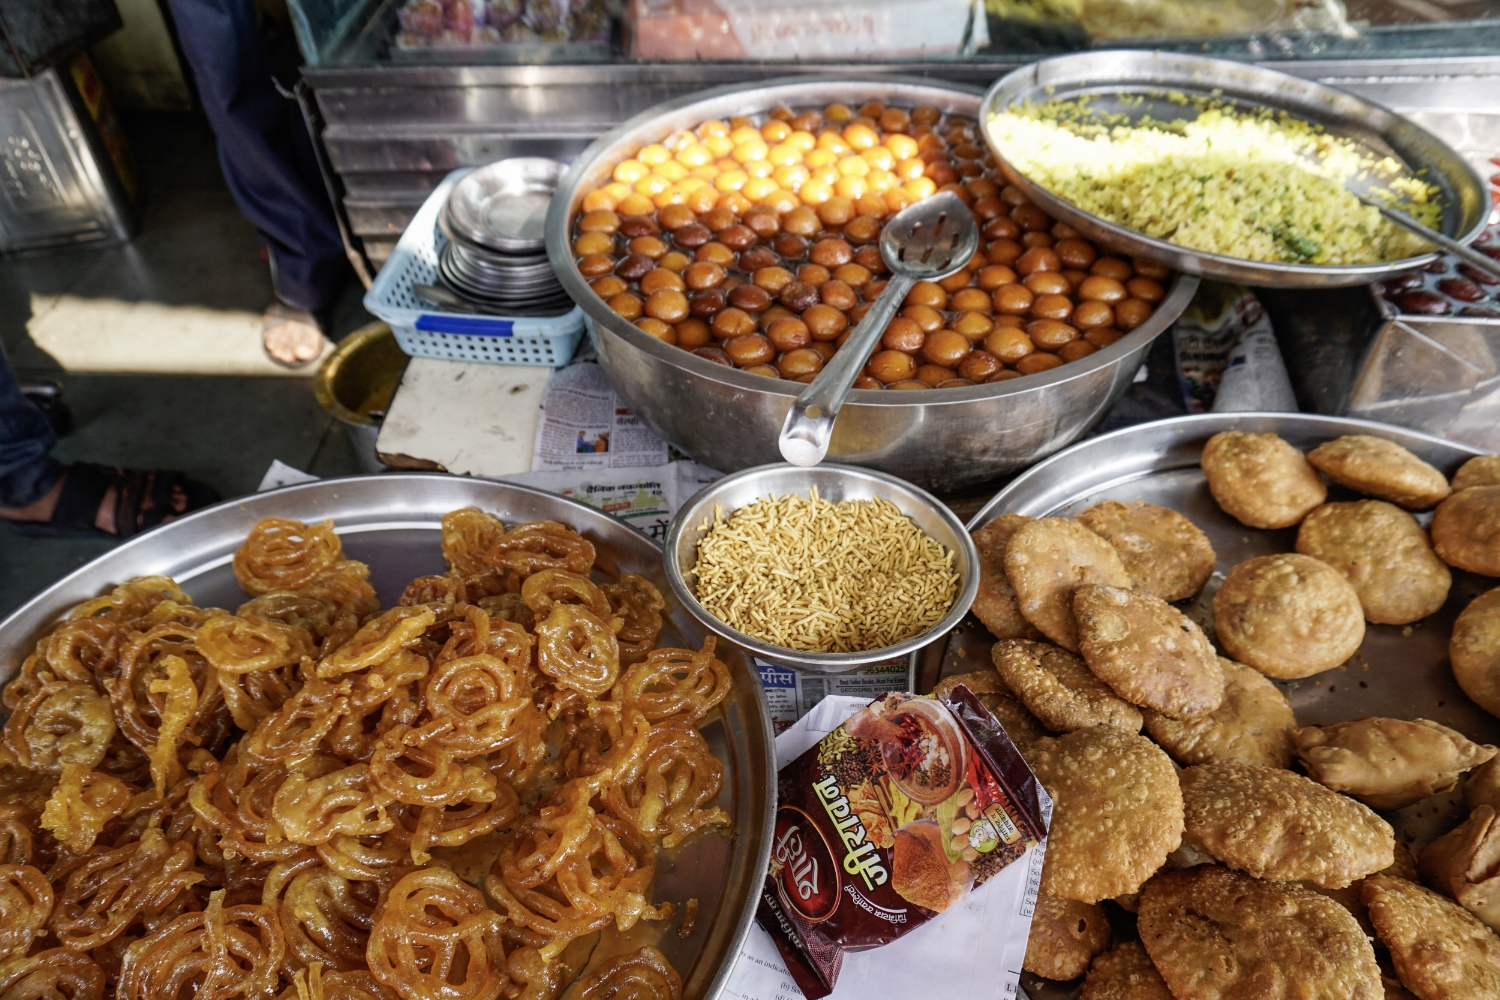 curio.trips.india.food.market.sweets.jpg